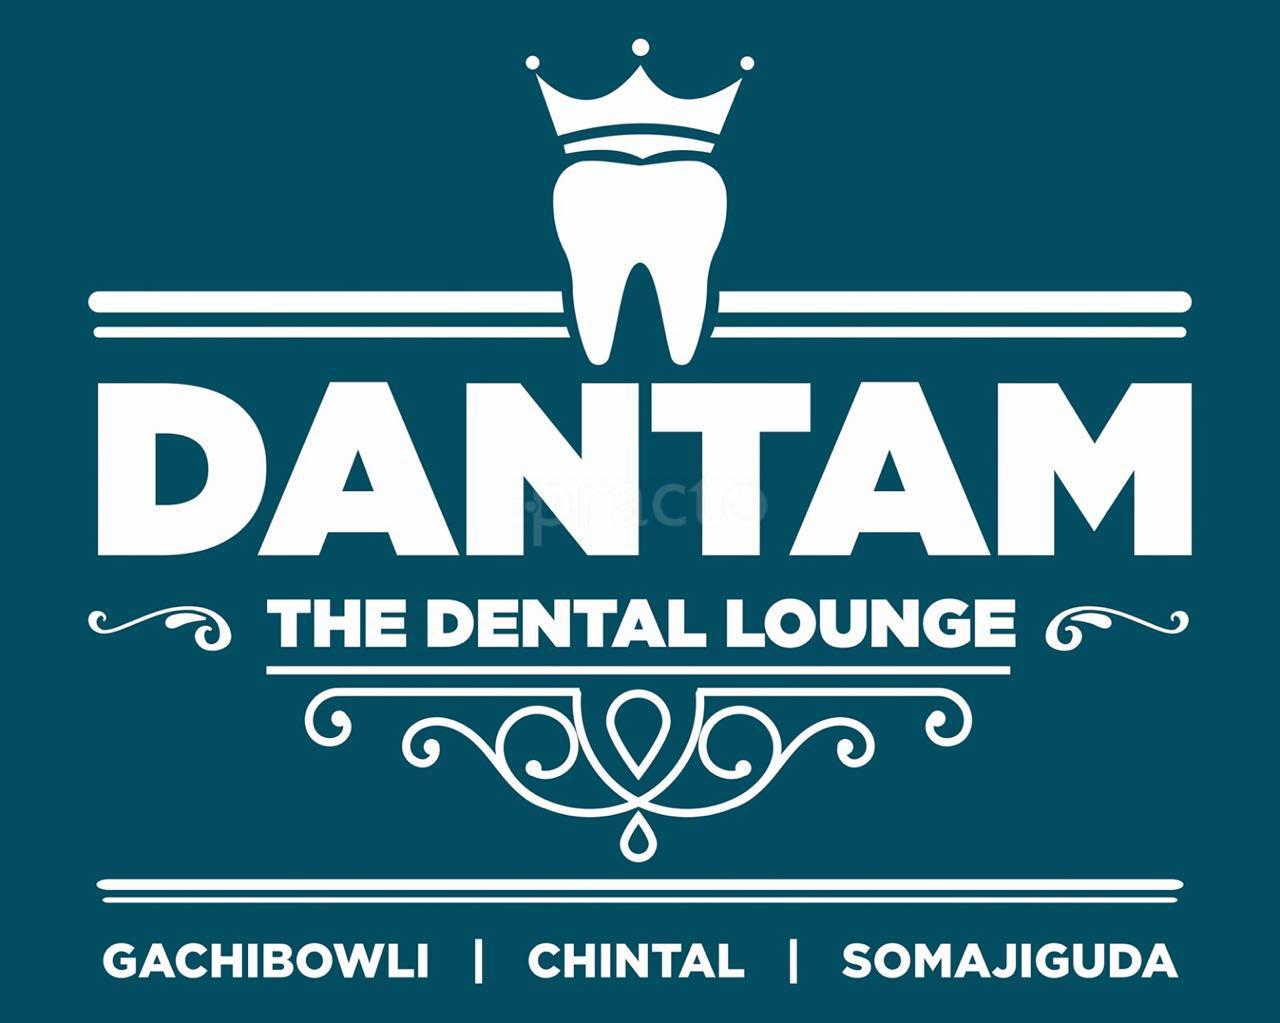 Dantam - The Dental Lounge